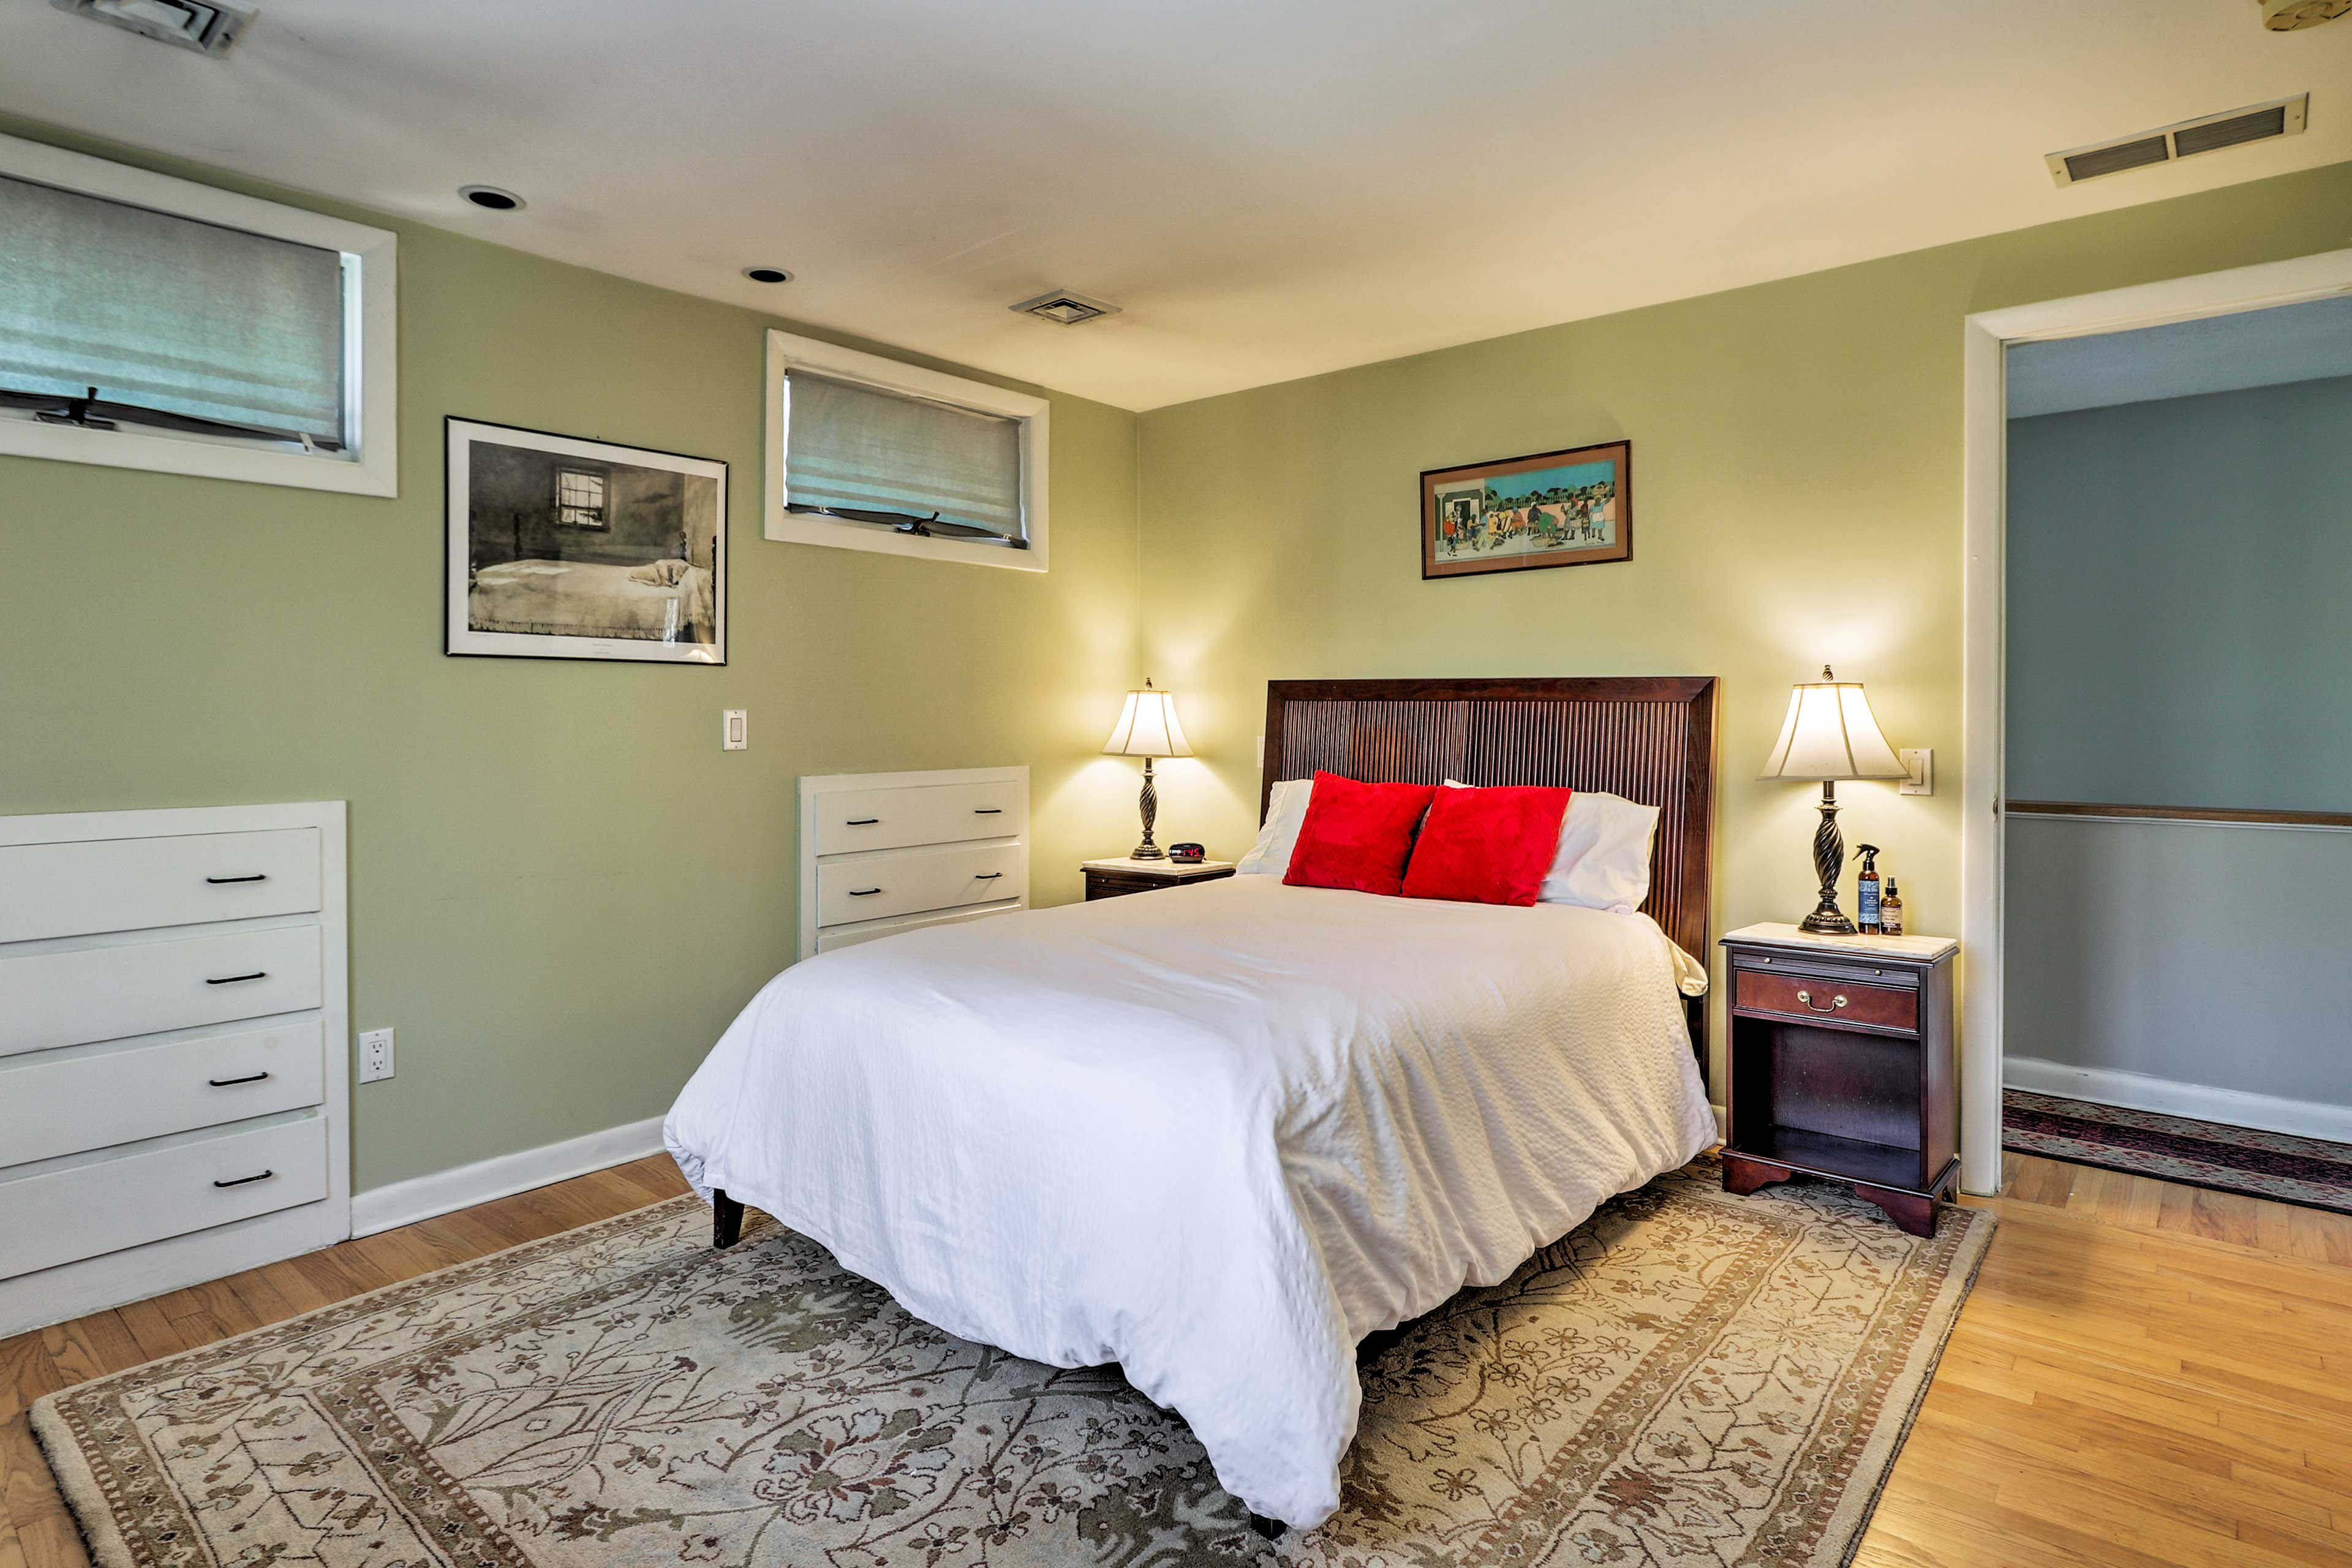 A full bed is also featured in this bedroom.